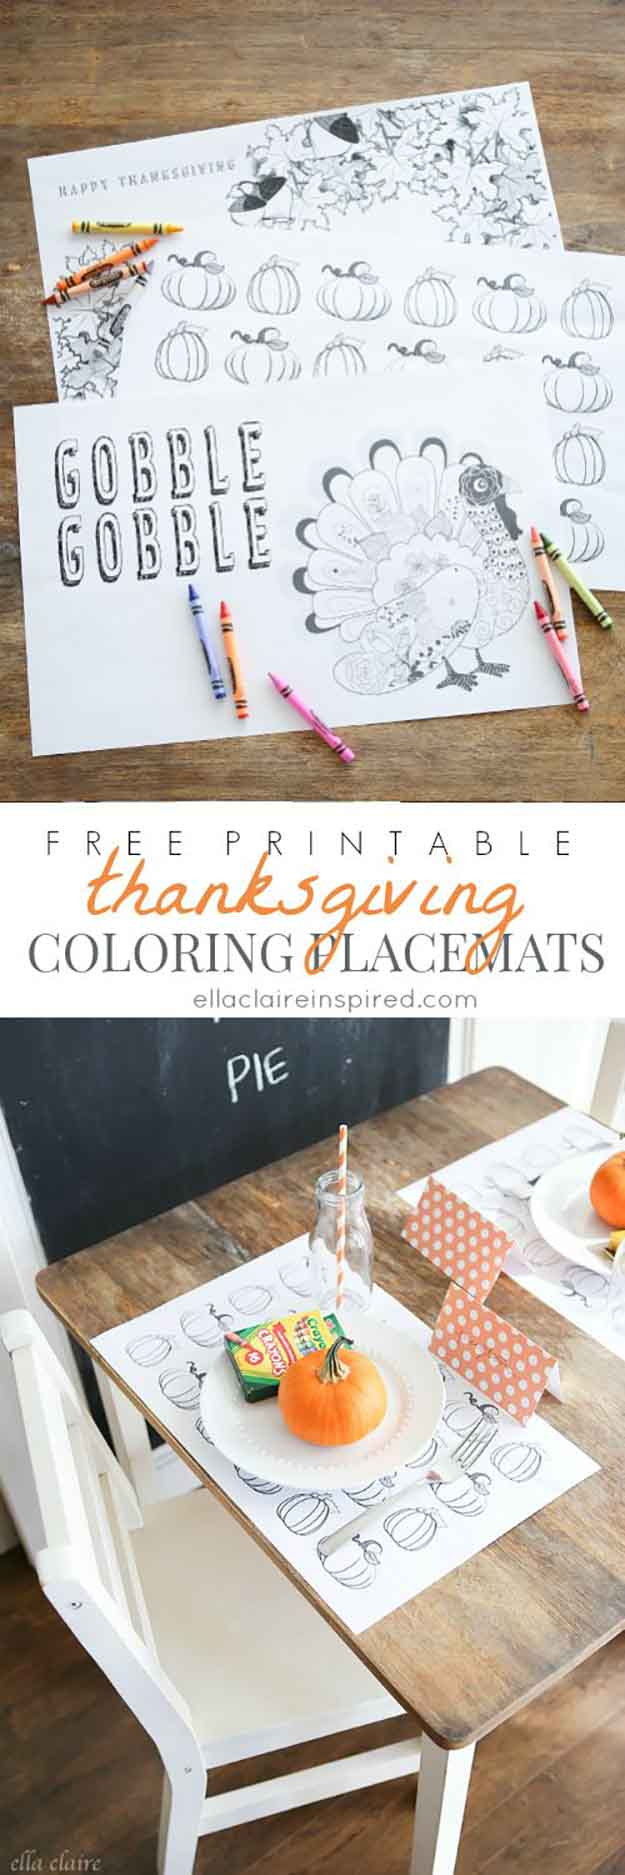 Diy holiday decor 14 thanksgiving placemat ideas for Home made thanksgiving decorations